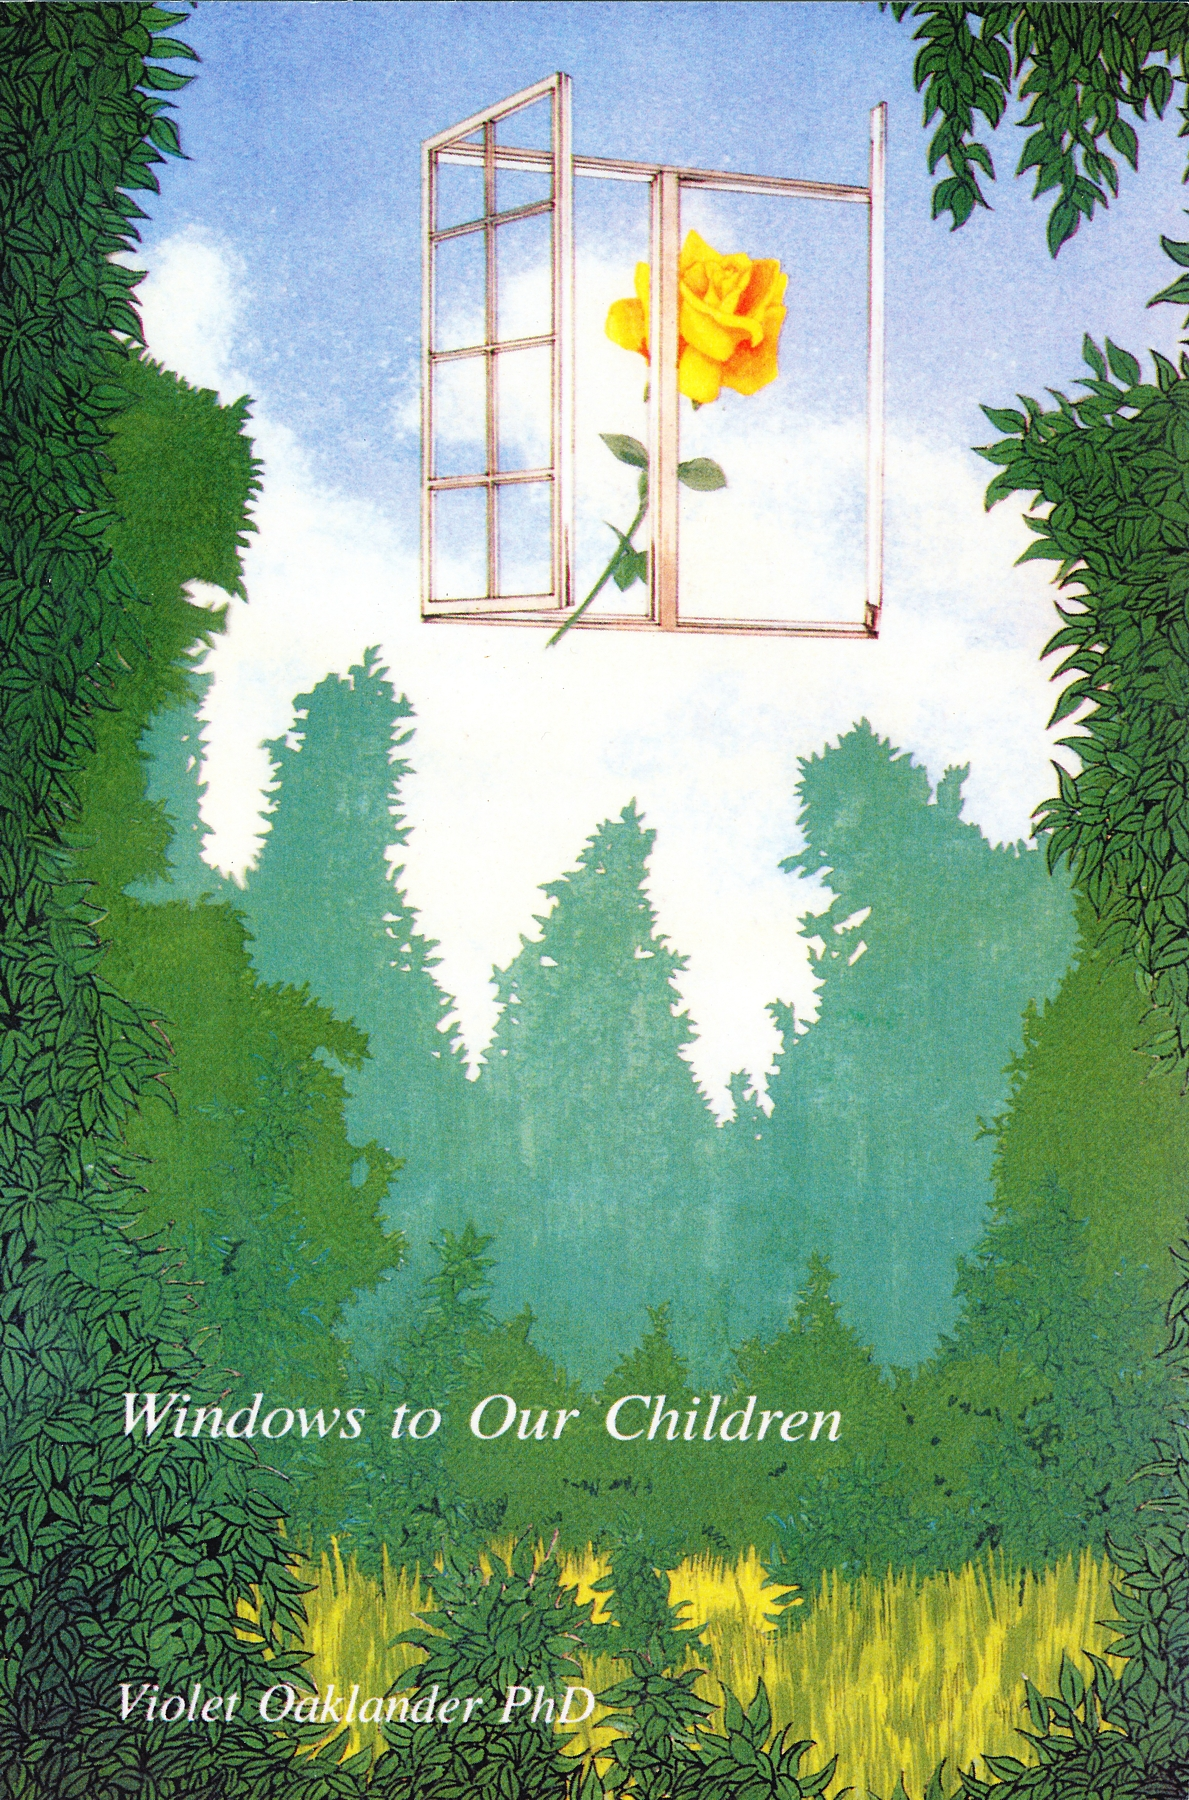 Windows to Our Children